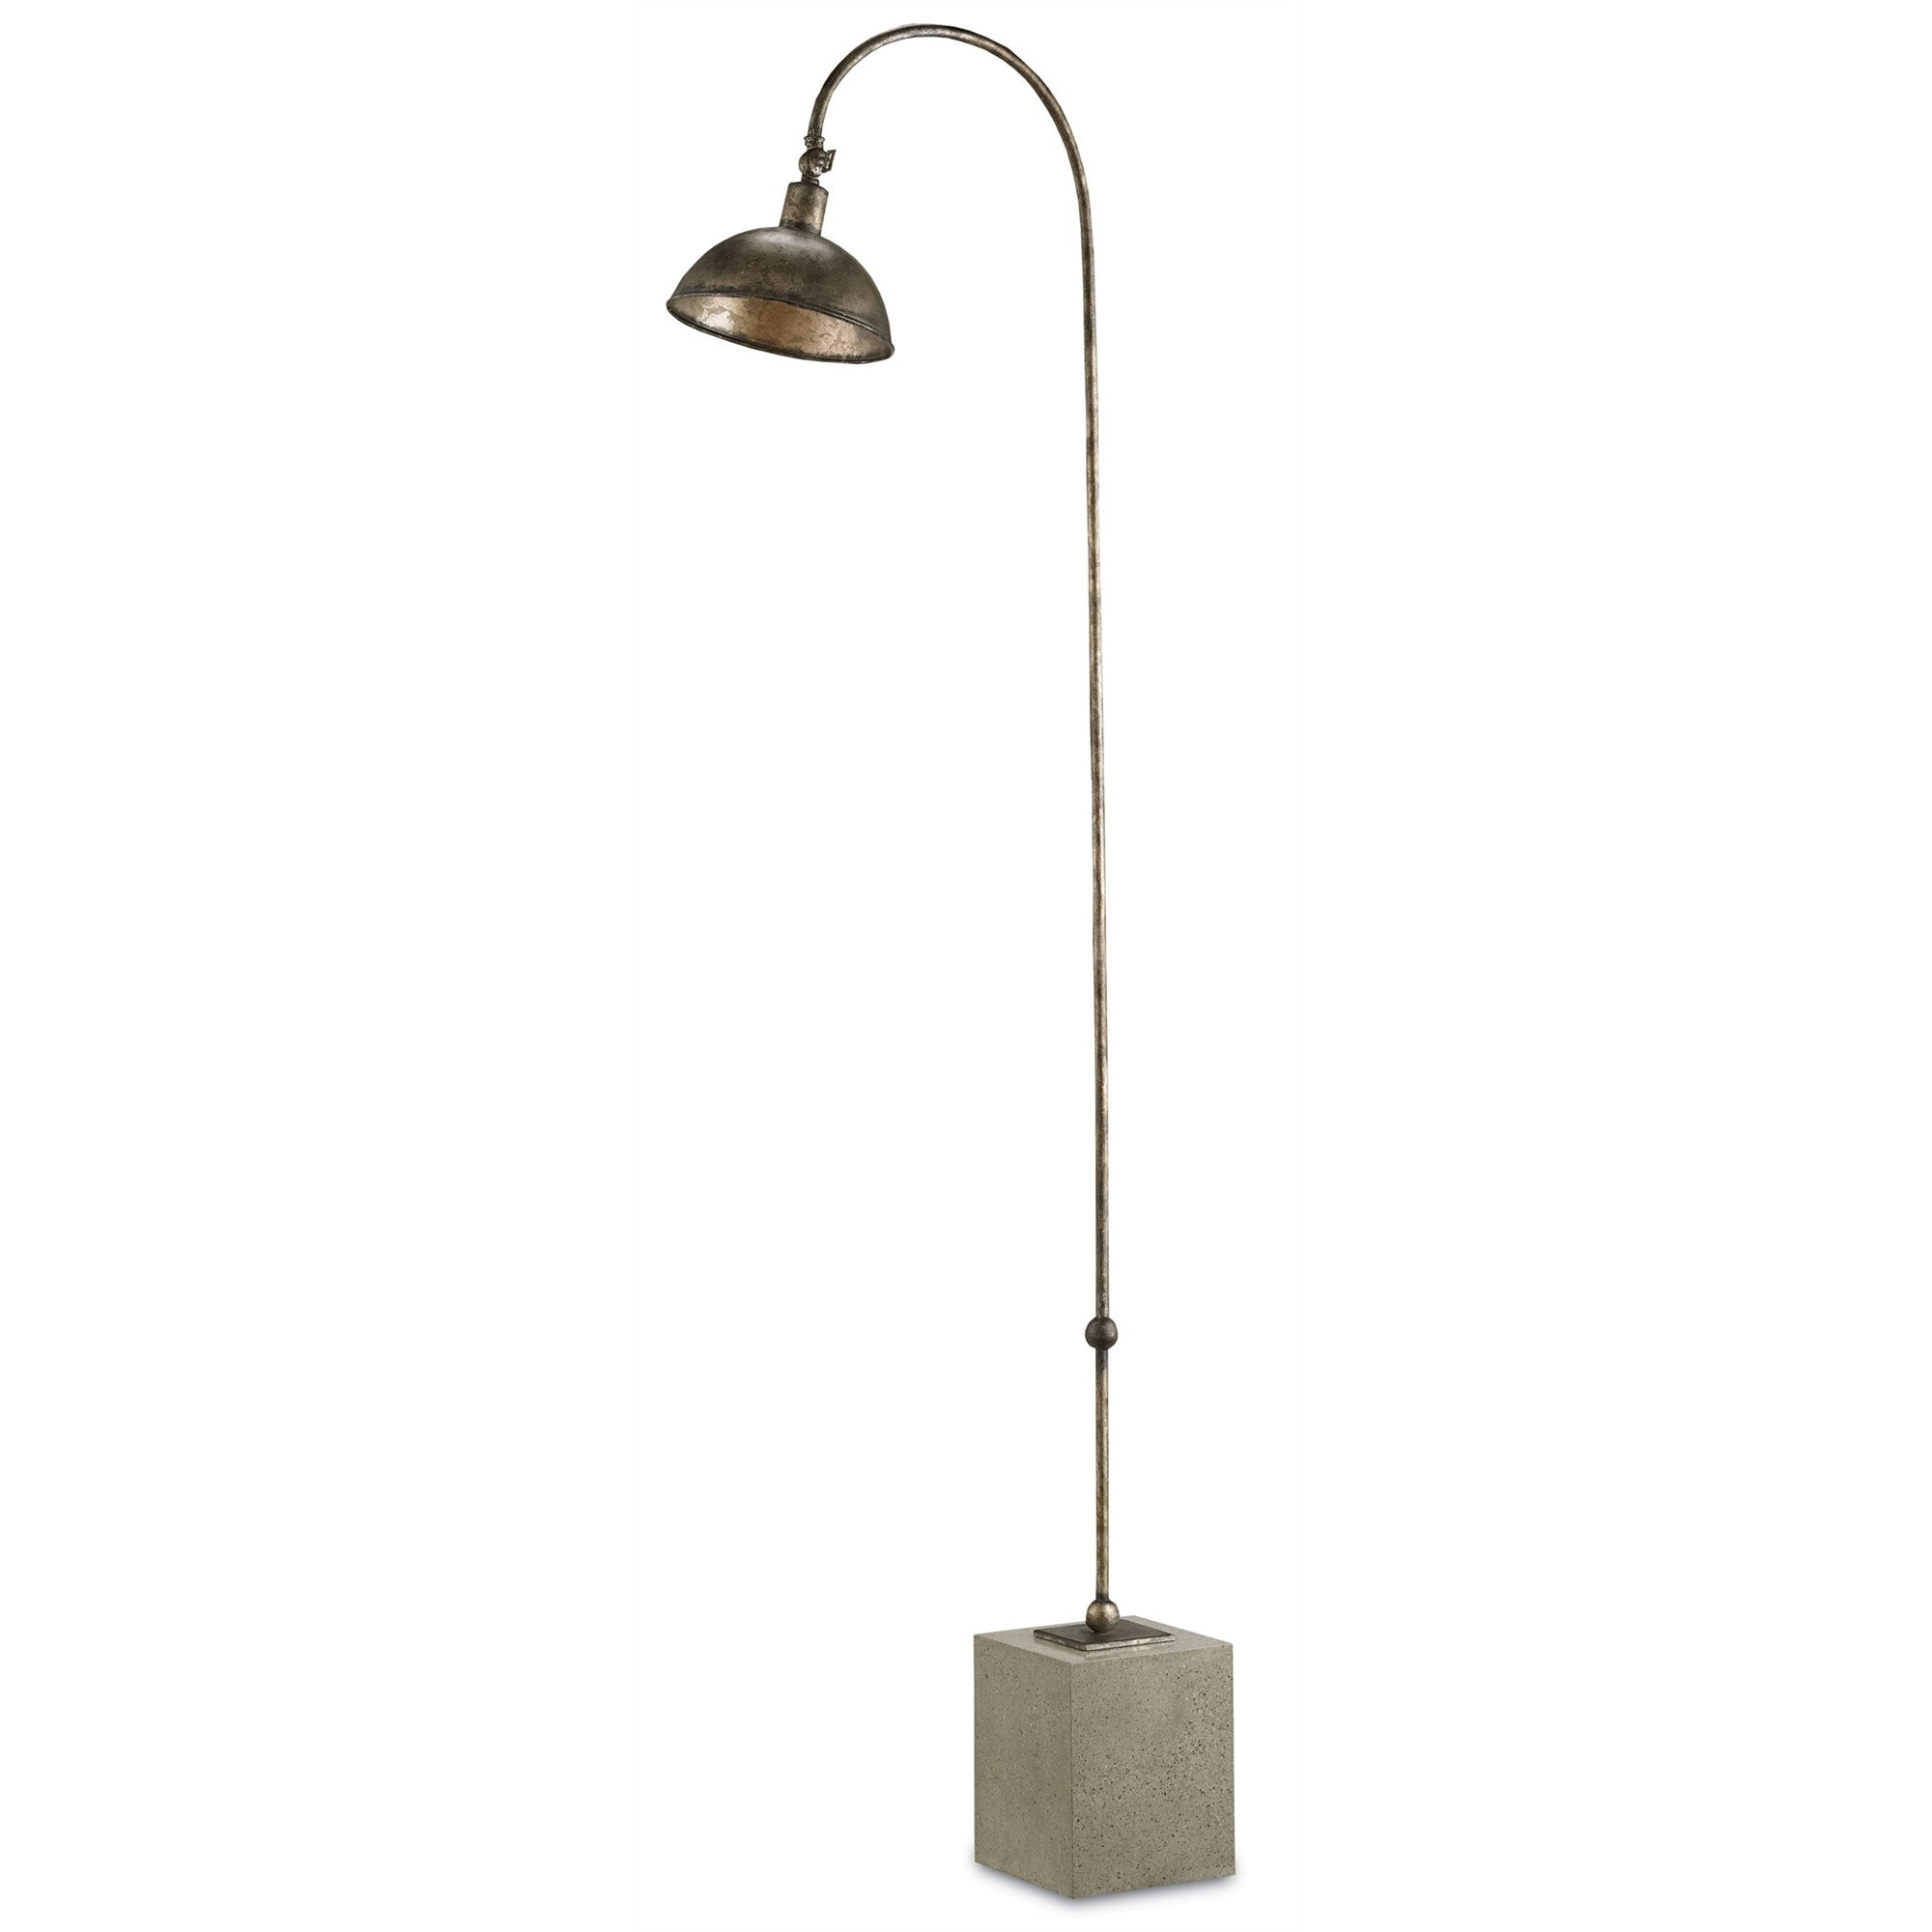 Currey and Co - Finstock Floor Lamp